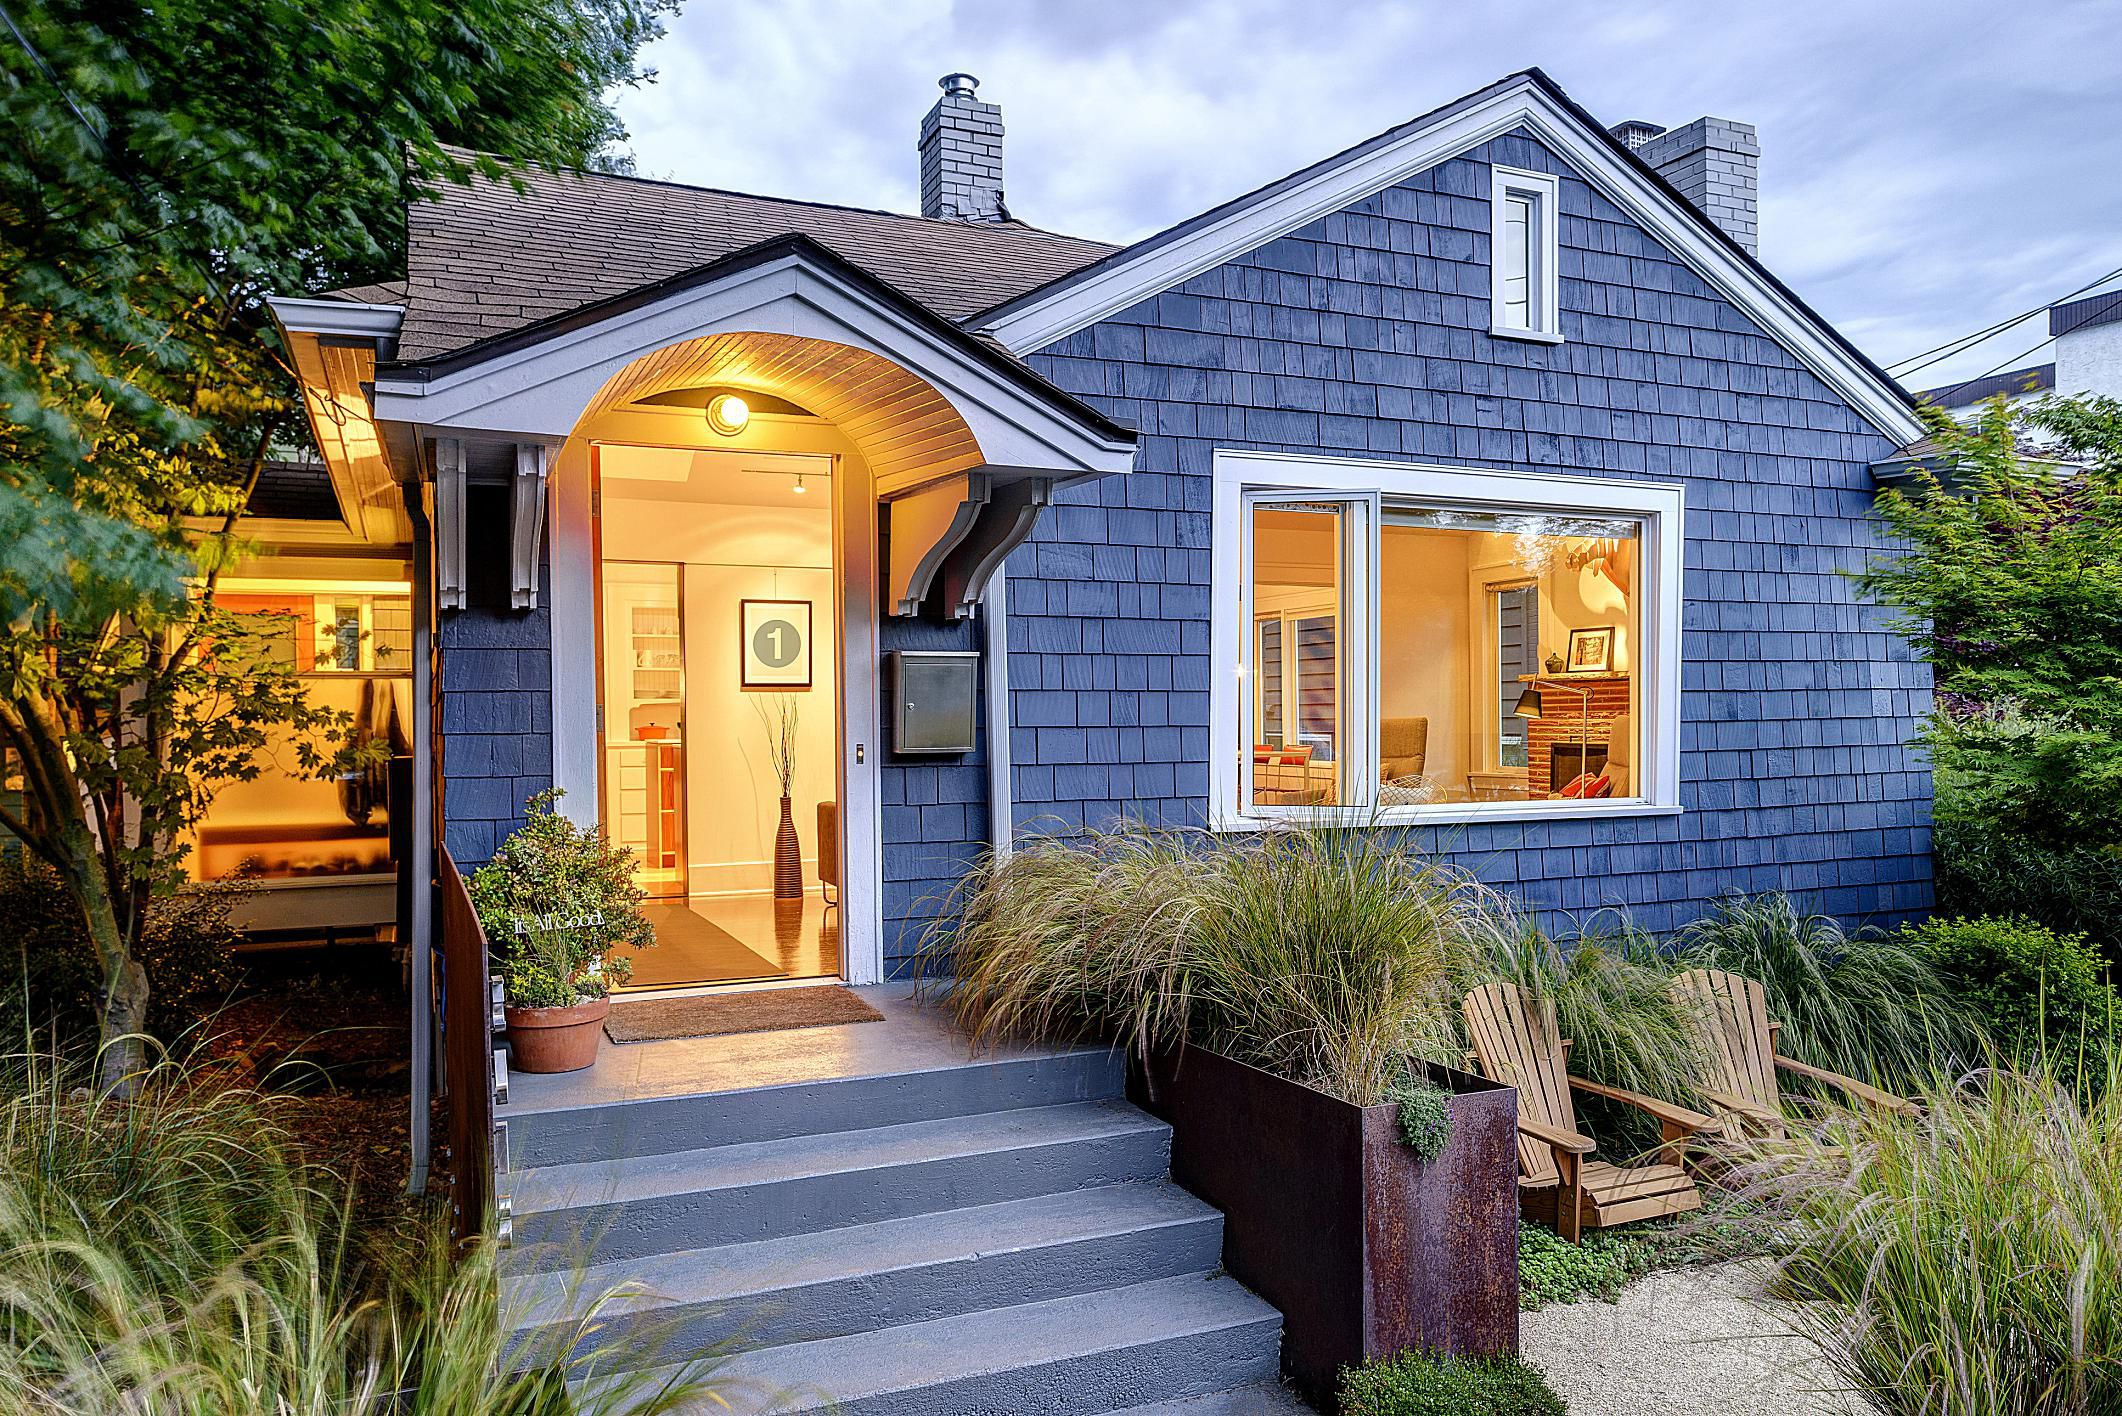 4 Ways To Keep Cedar Wood Colorful and Protected